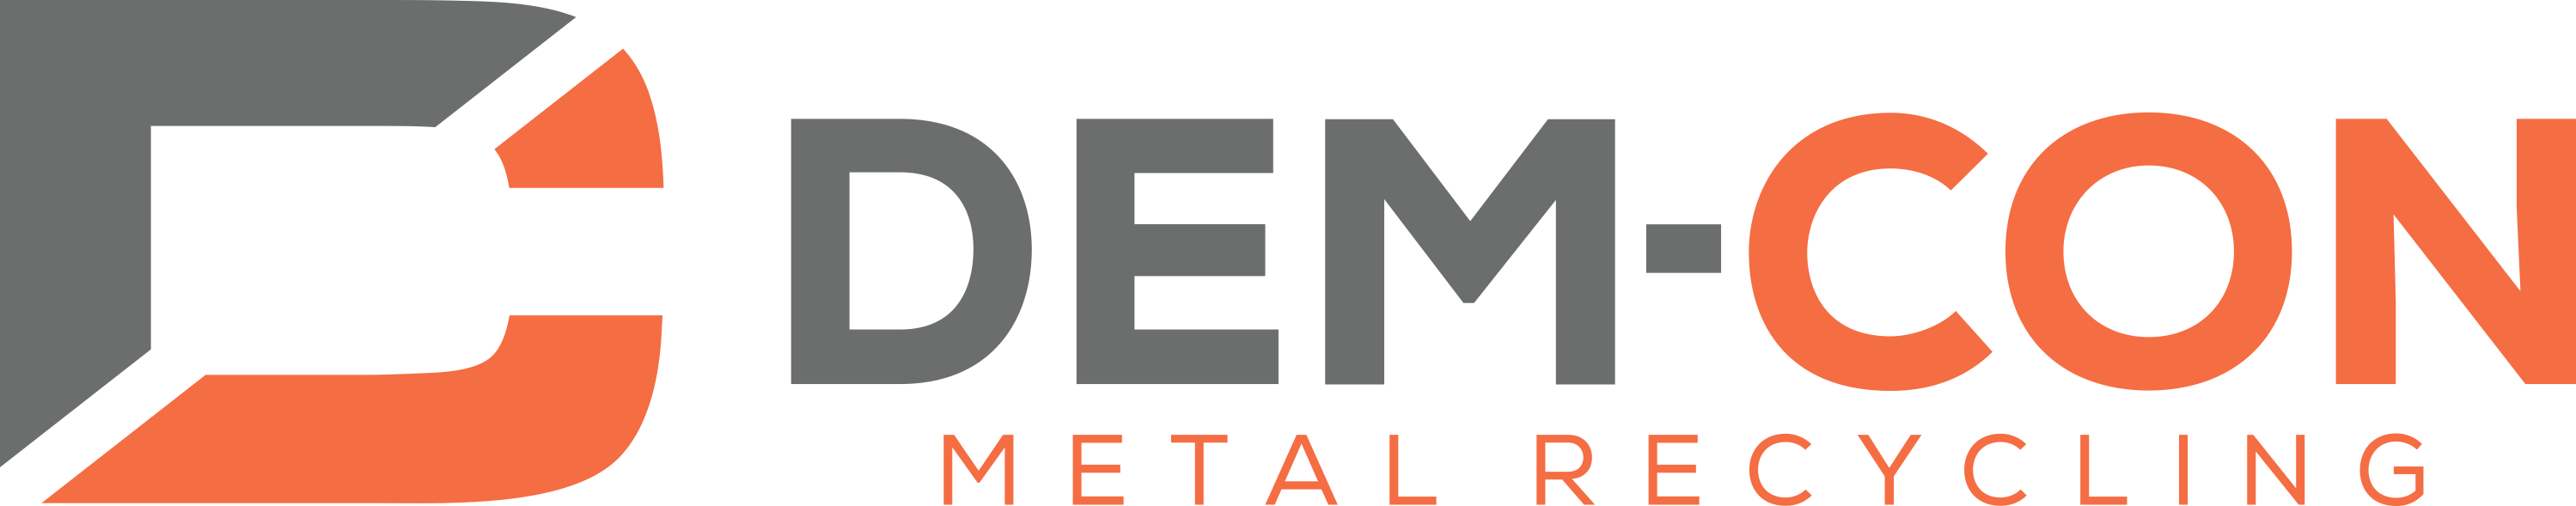 DemConLogo- Metal Recycling